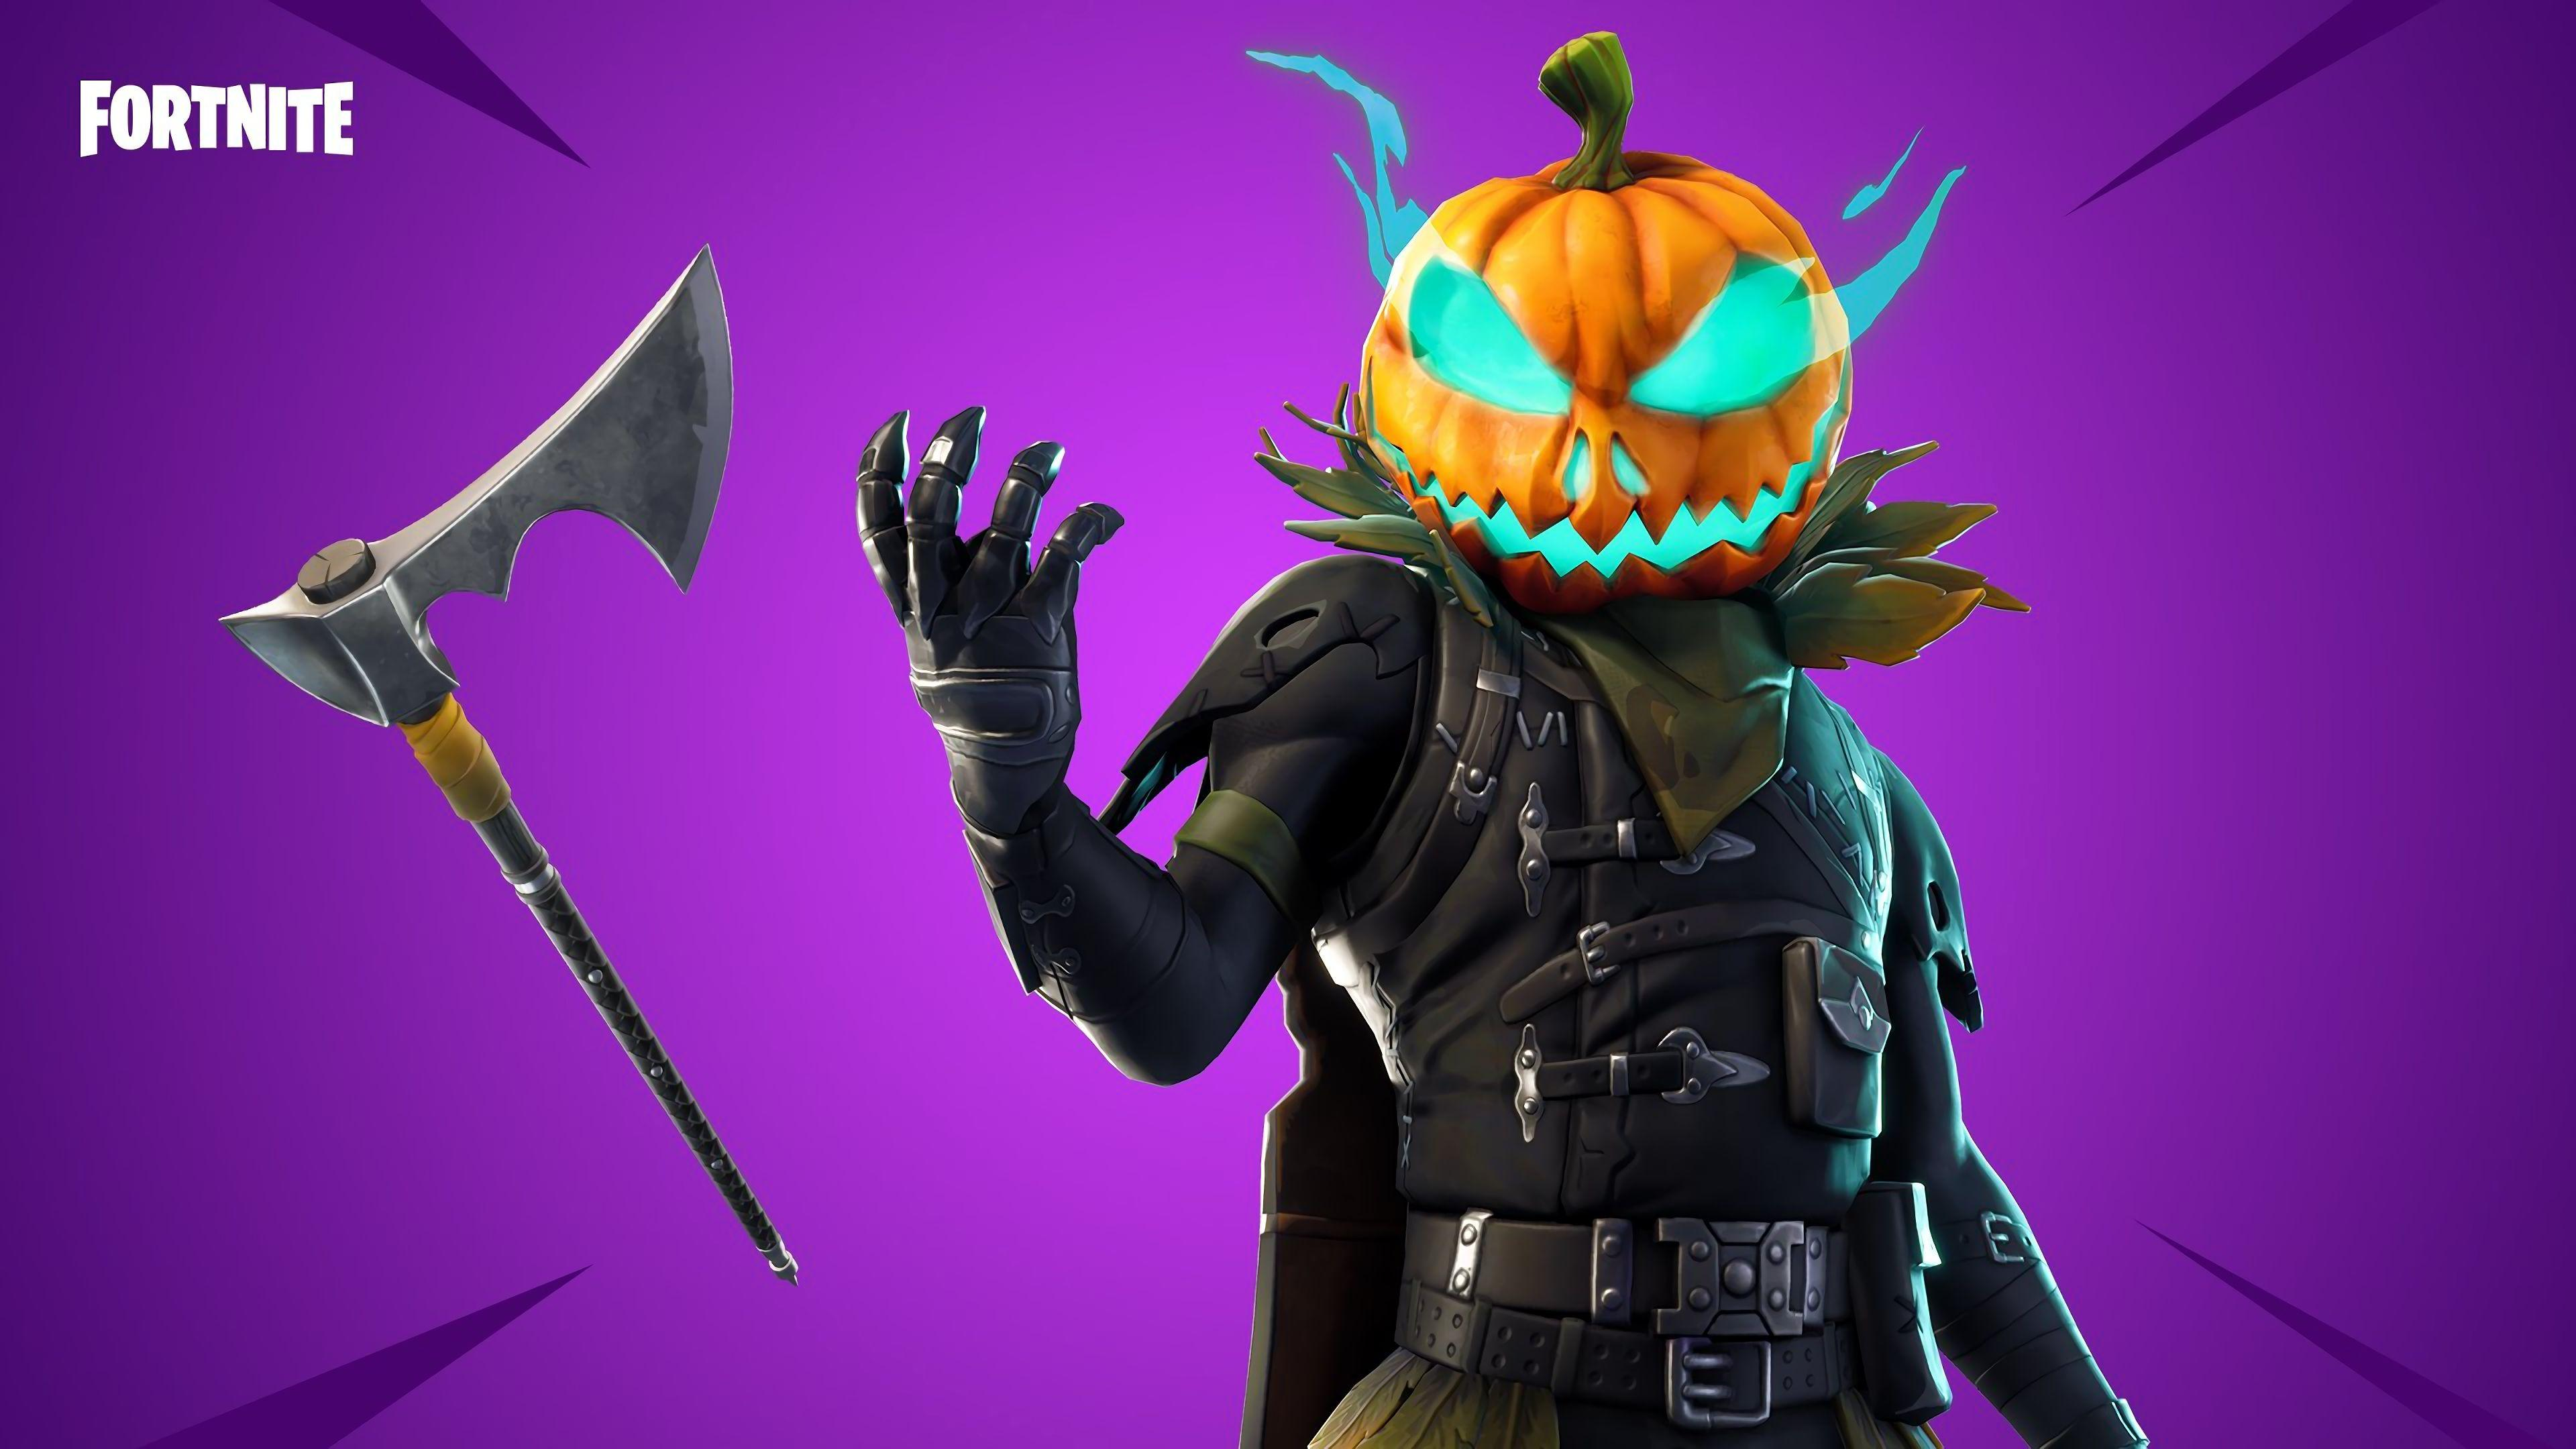 4k Hollowhead Wallapper Fortnite Outfit #4330 Wallpapers and Free ...